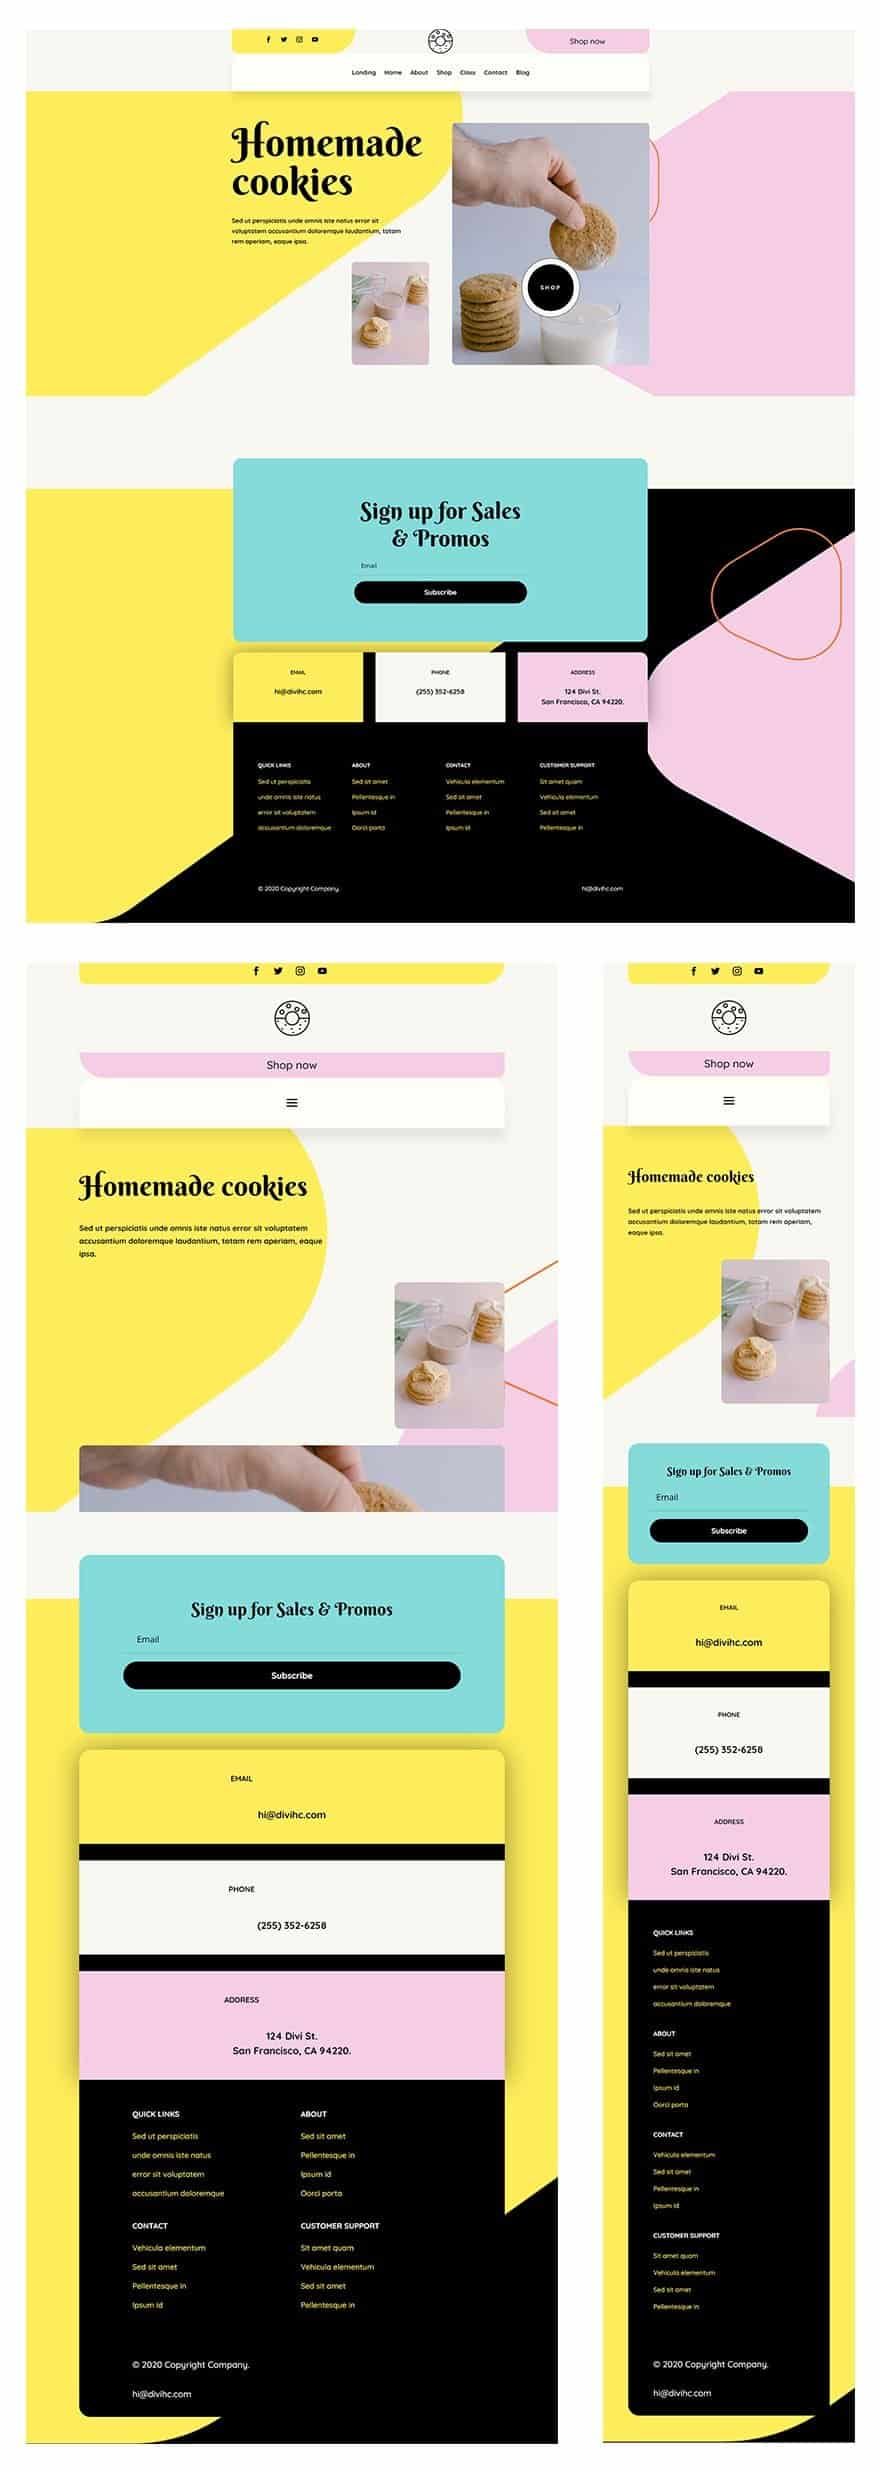 download-a-free-header-footer-for-divis-homemade-cookies-layout-pack Download a FREE Header & Footer for Divi's Homemade Cookies Layout Pack